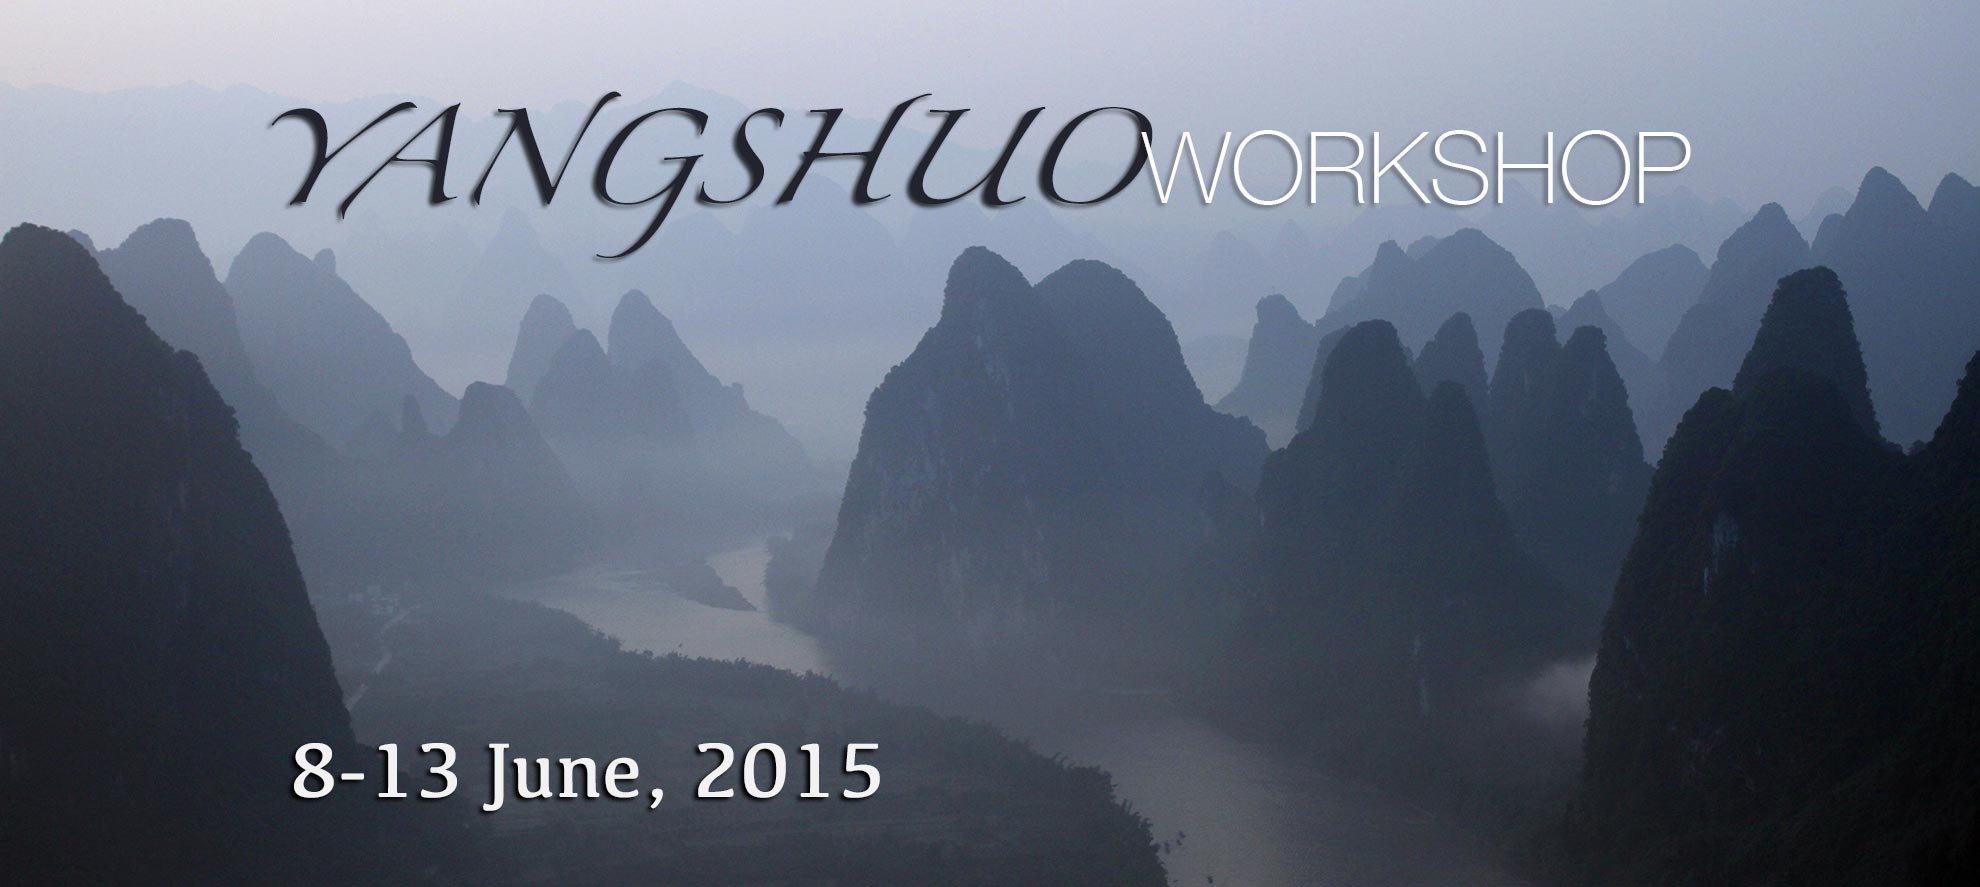 Yangshuo Photography Workshop